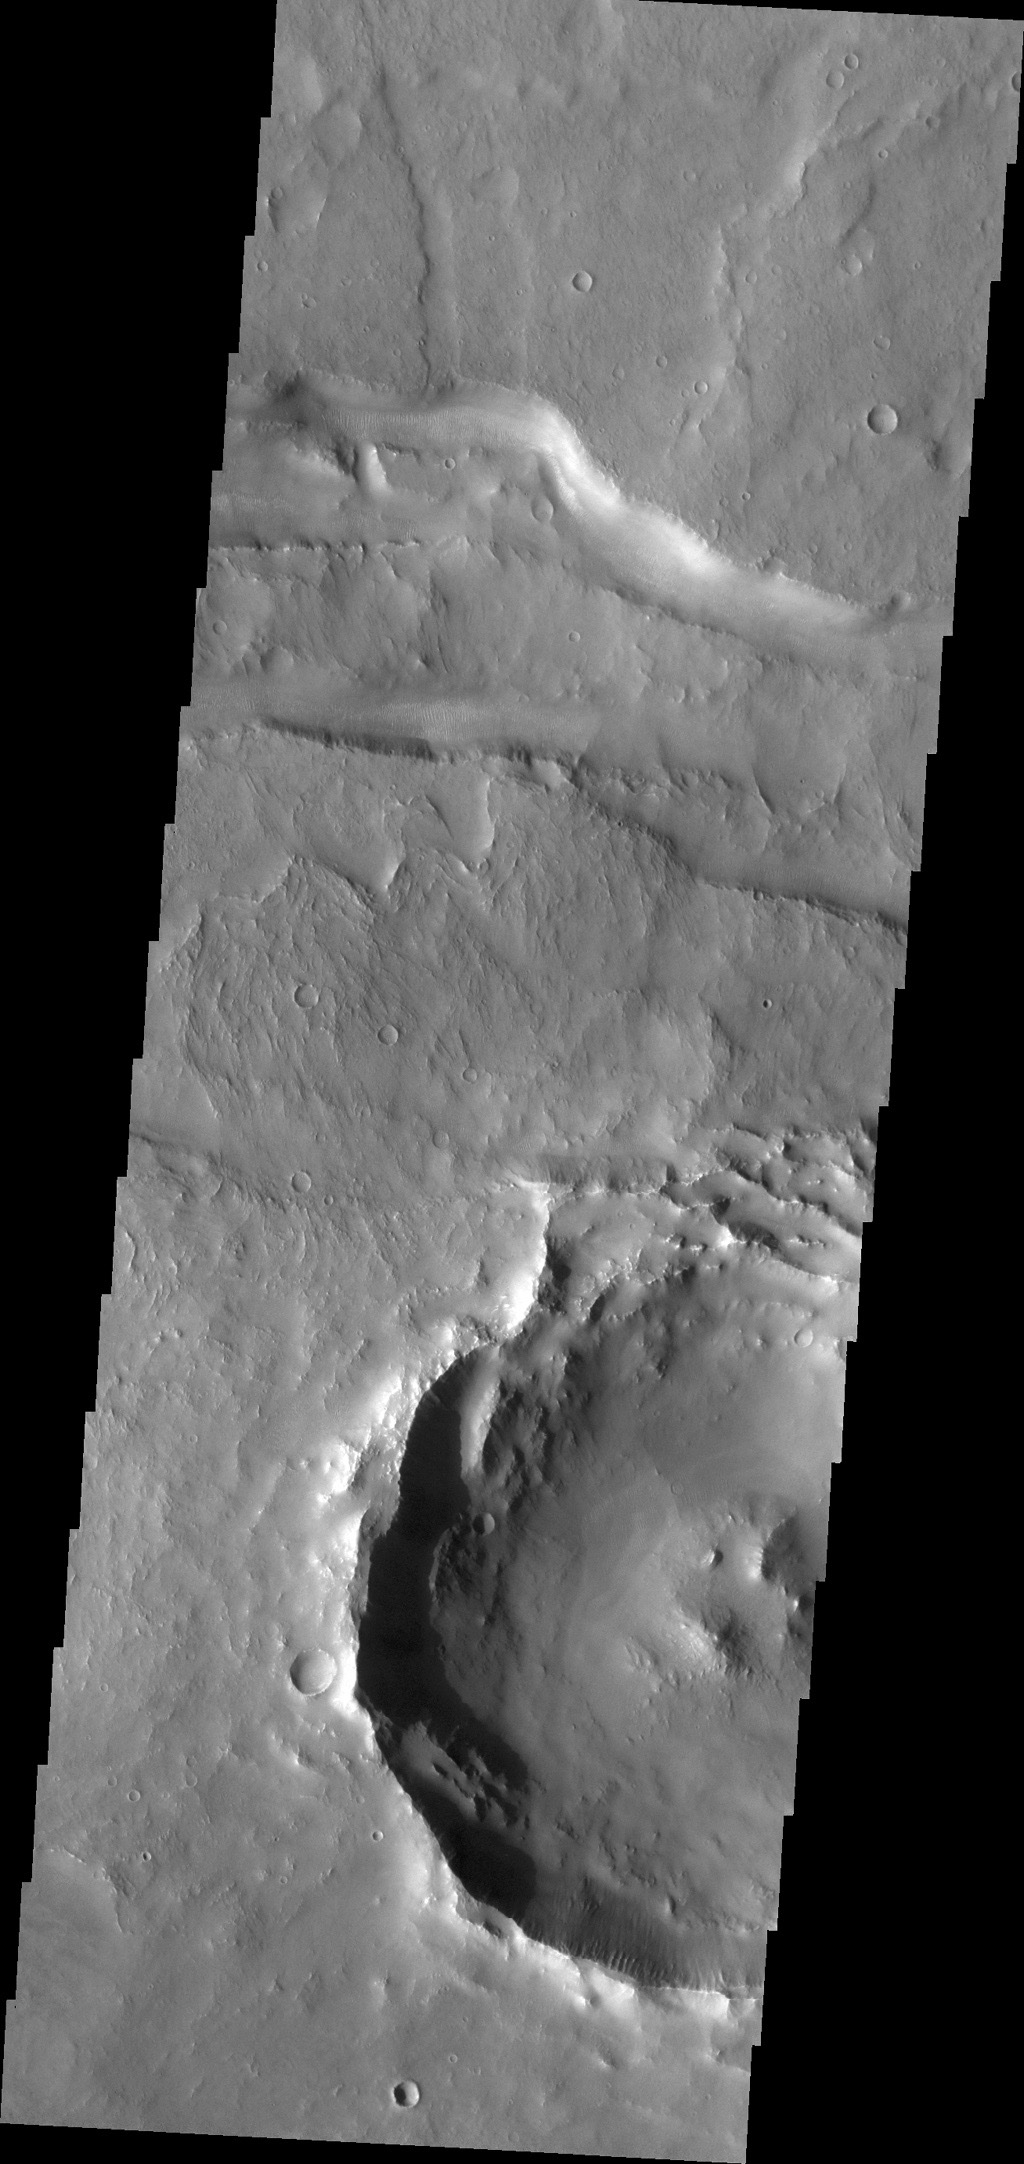 This image from NASA's 2001 Mars Odyssey spacecraft shows a small portion of a east/west trending fracture in Thaumasia Planum on Mars.